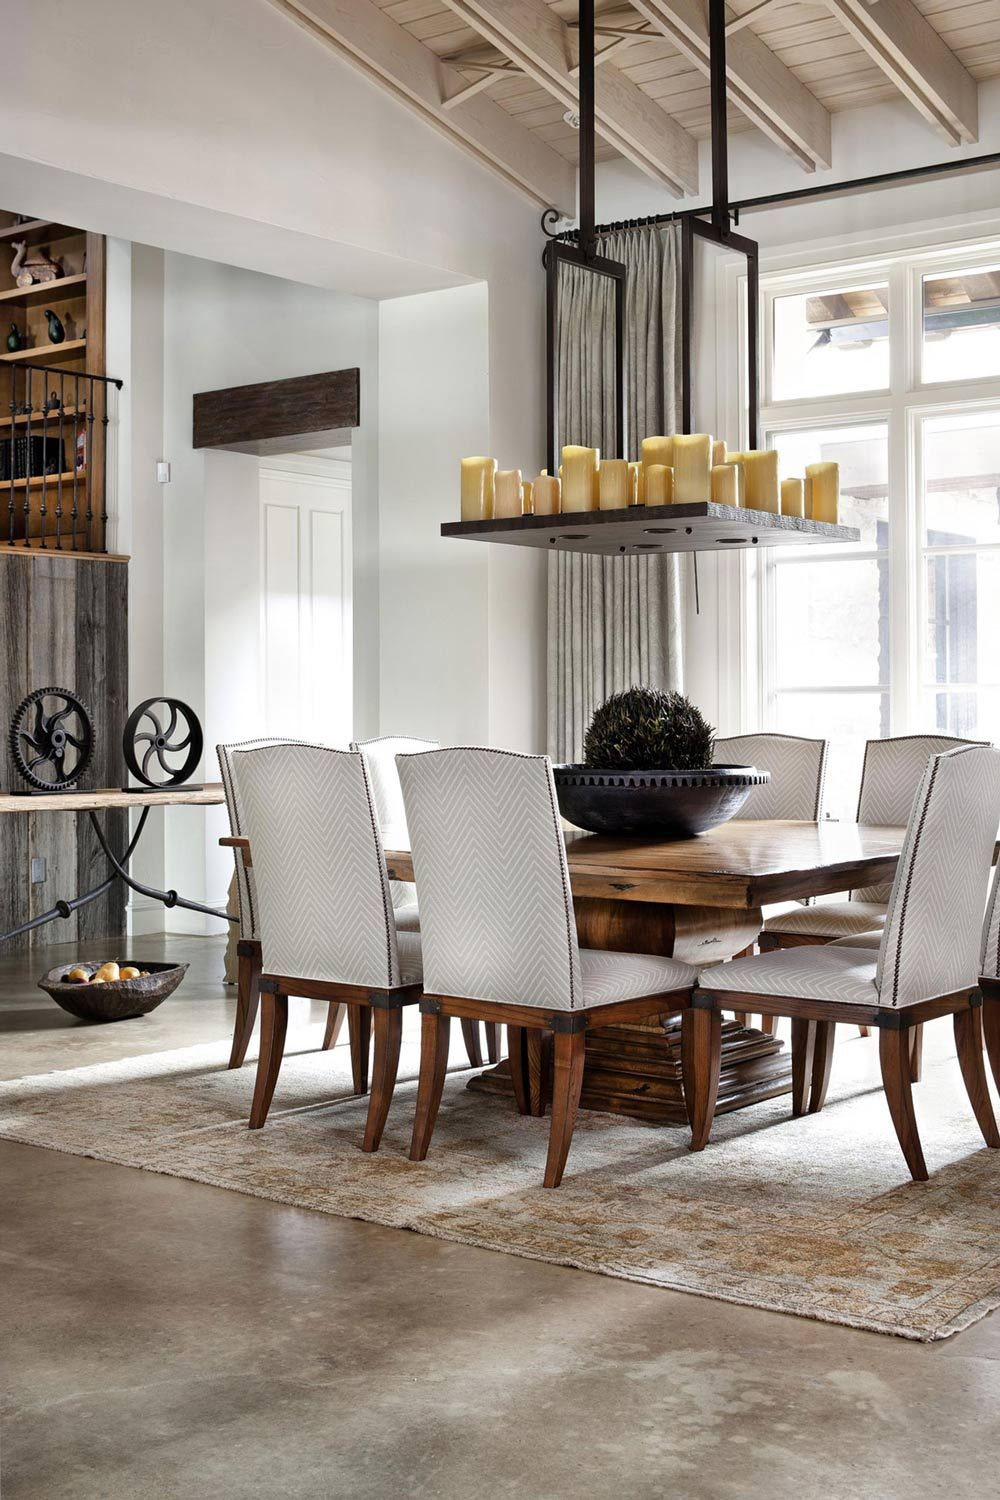 Candle Chandelier Square Dining Tables Minimalist Dining Room Modern Dining Room